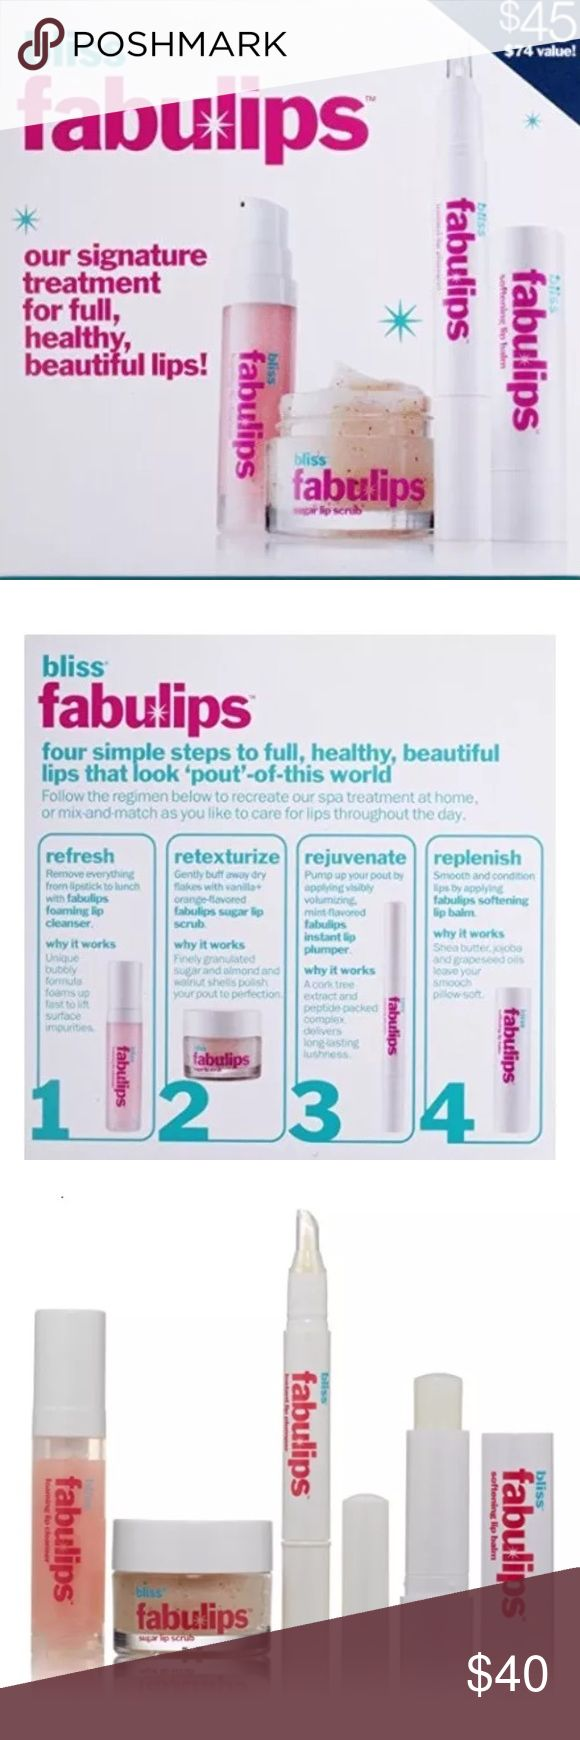 Fabulips -It's all here! For a perfect pout, this is it! It's literally all here. 💯Authentic! BLISS FABULIPS 😚👄  Brand New/Boxed  Price cut dramatically!  Description  It's a facial for your lips! Designed to recreate bliss Spa's popular and unique fabulips treatment, this pout-perfecting kit cleans, exfoliates, plumps, and softens.  Benefits A routine to leave your lips full, healthy, and beautiful. Bliss Makeup Lip Balm & Gloss